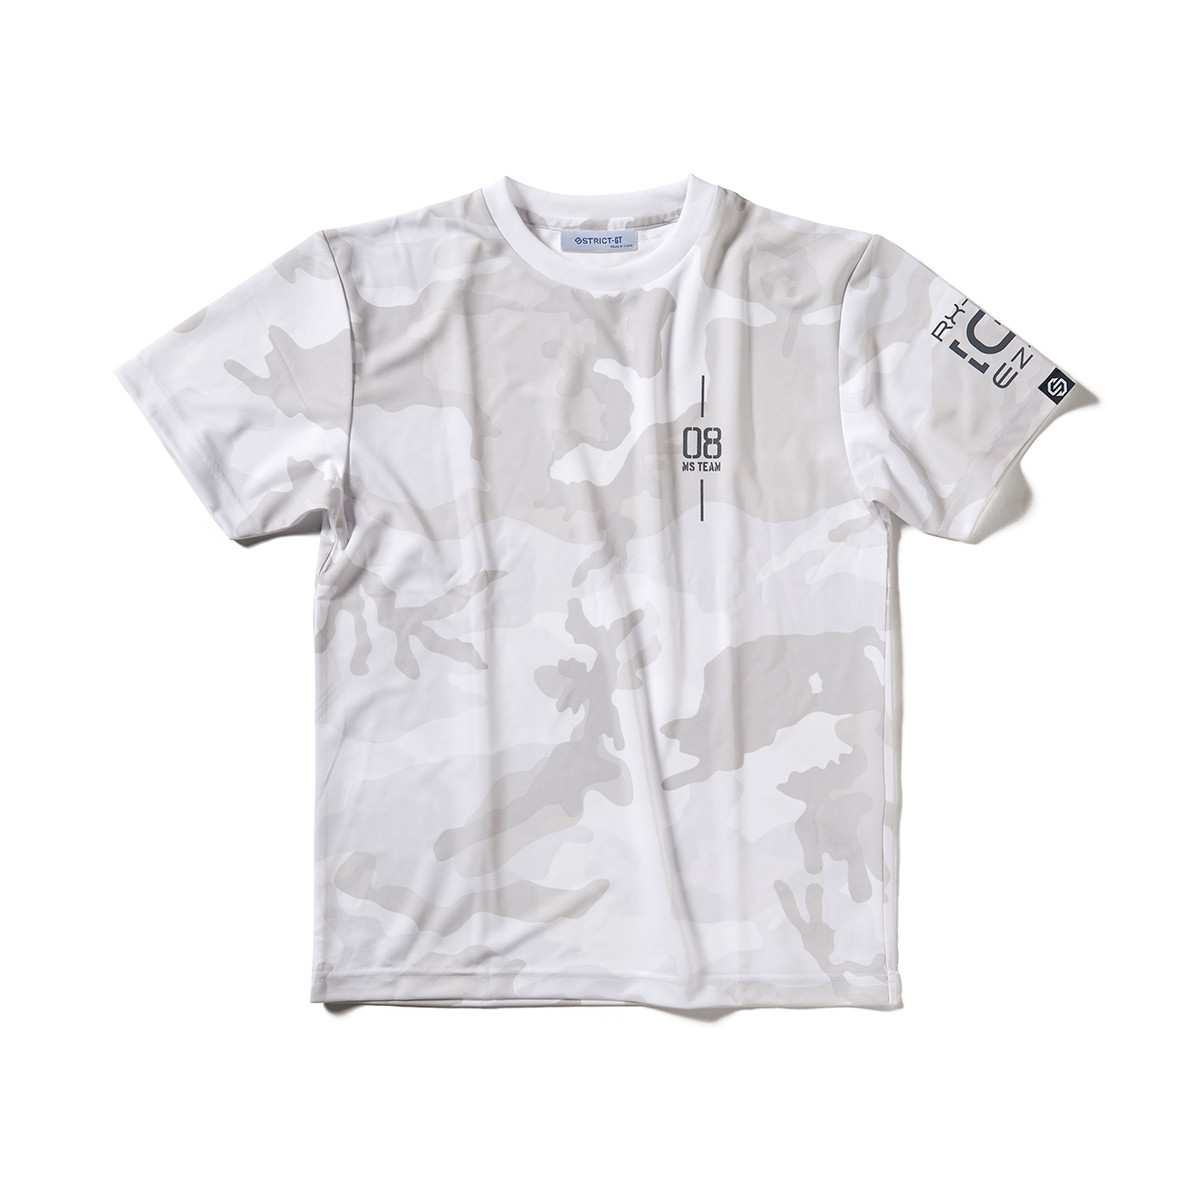 Camouflage Quick-Drying T-shirt—Mobile Suit Gundam: The 08th MS Team/STRICT-G Collaboration